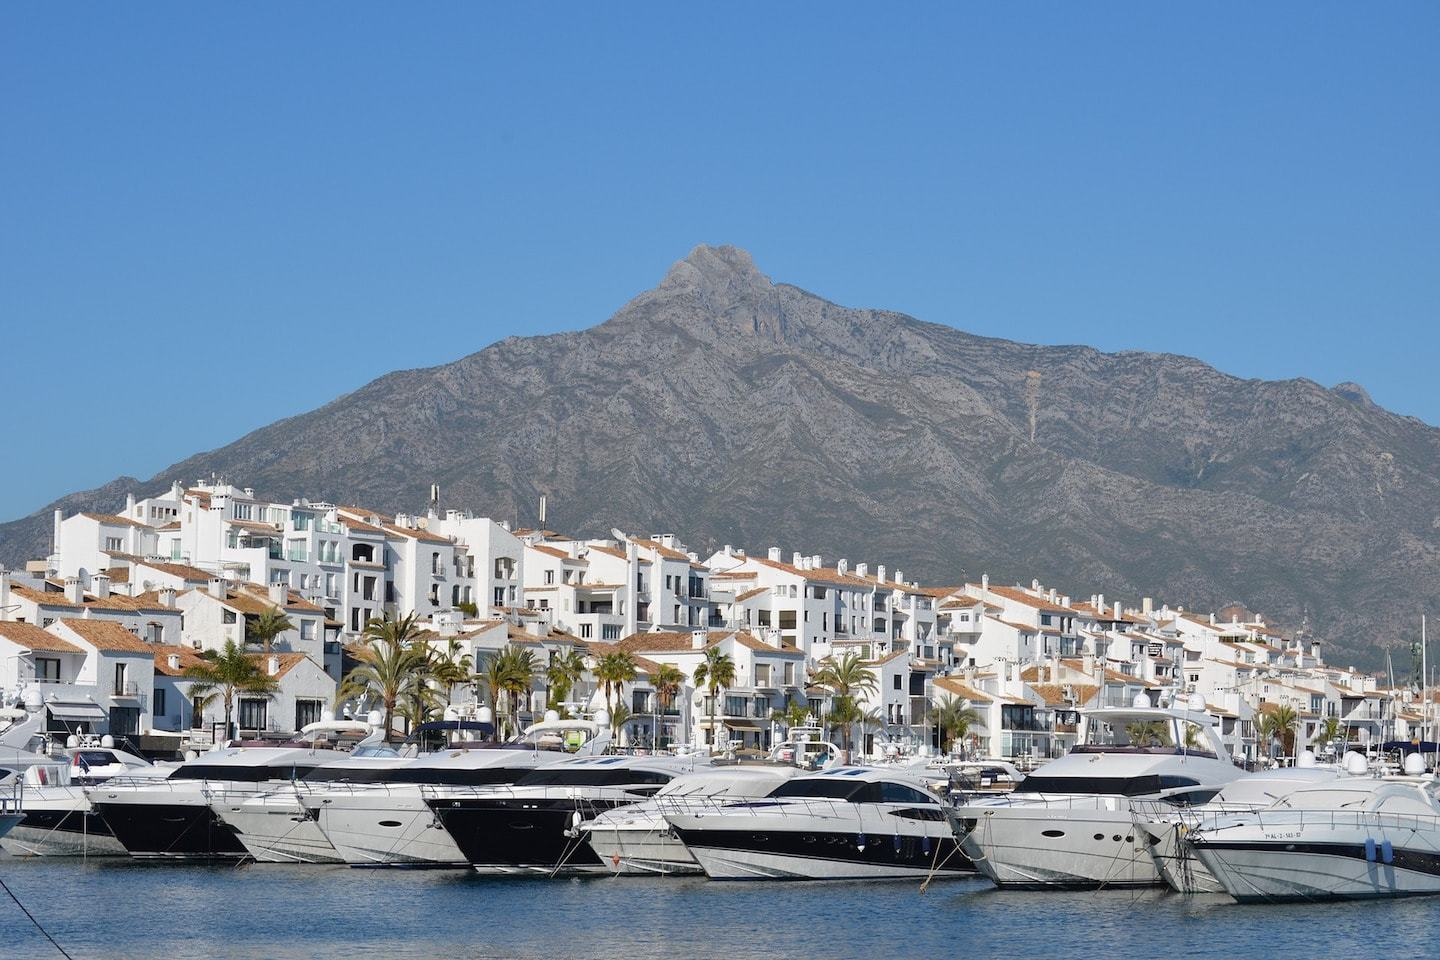 port with docked ships with mountains and houses in background